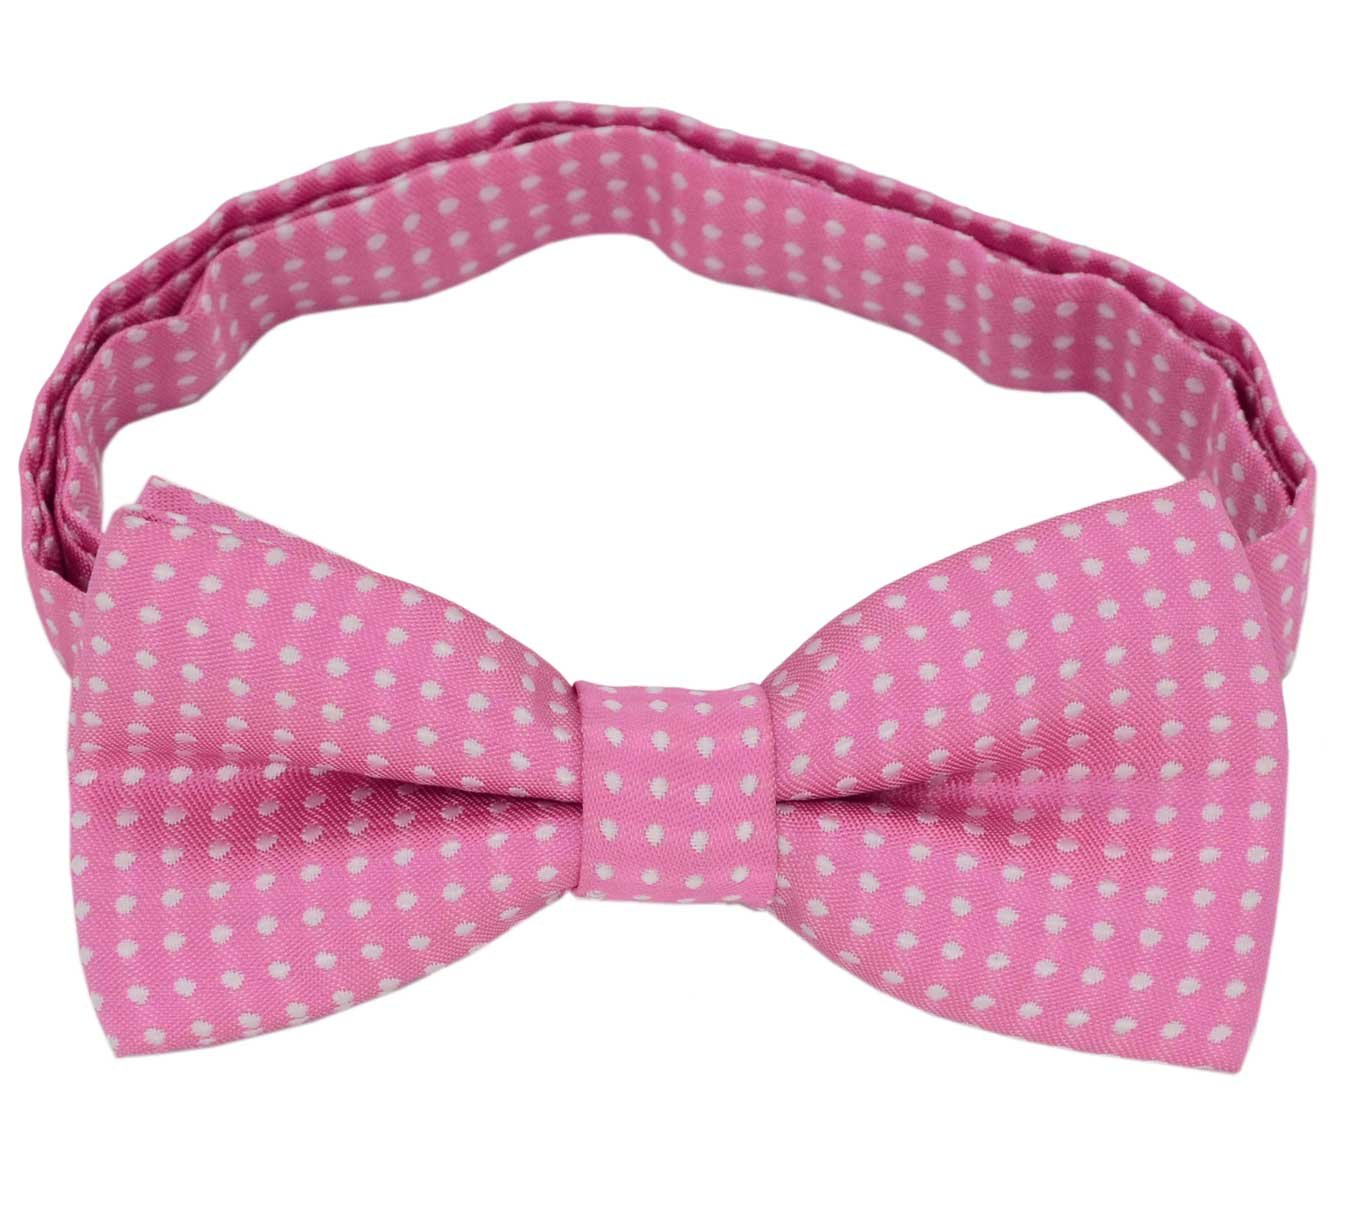 176d6320f98f Amazon.com : Heypet Adjustable Bow Tie for Dog Cat Pet (Pink) : Pet Supplies